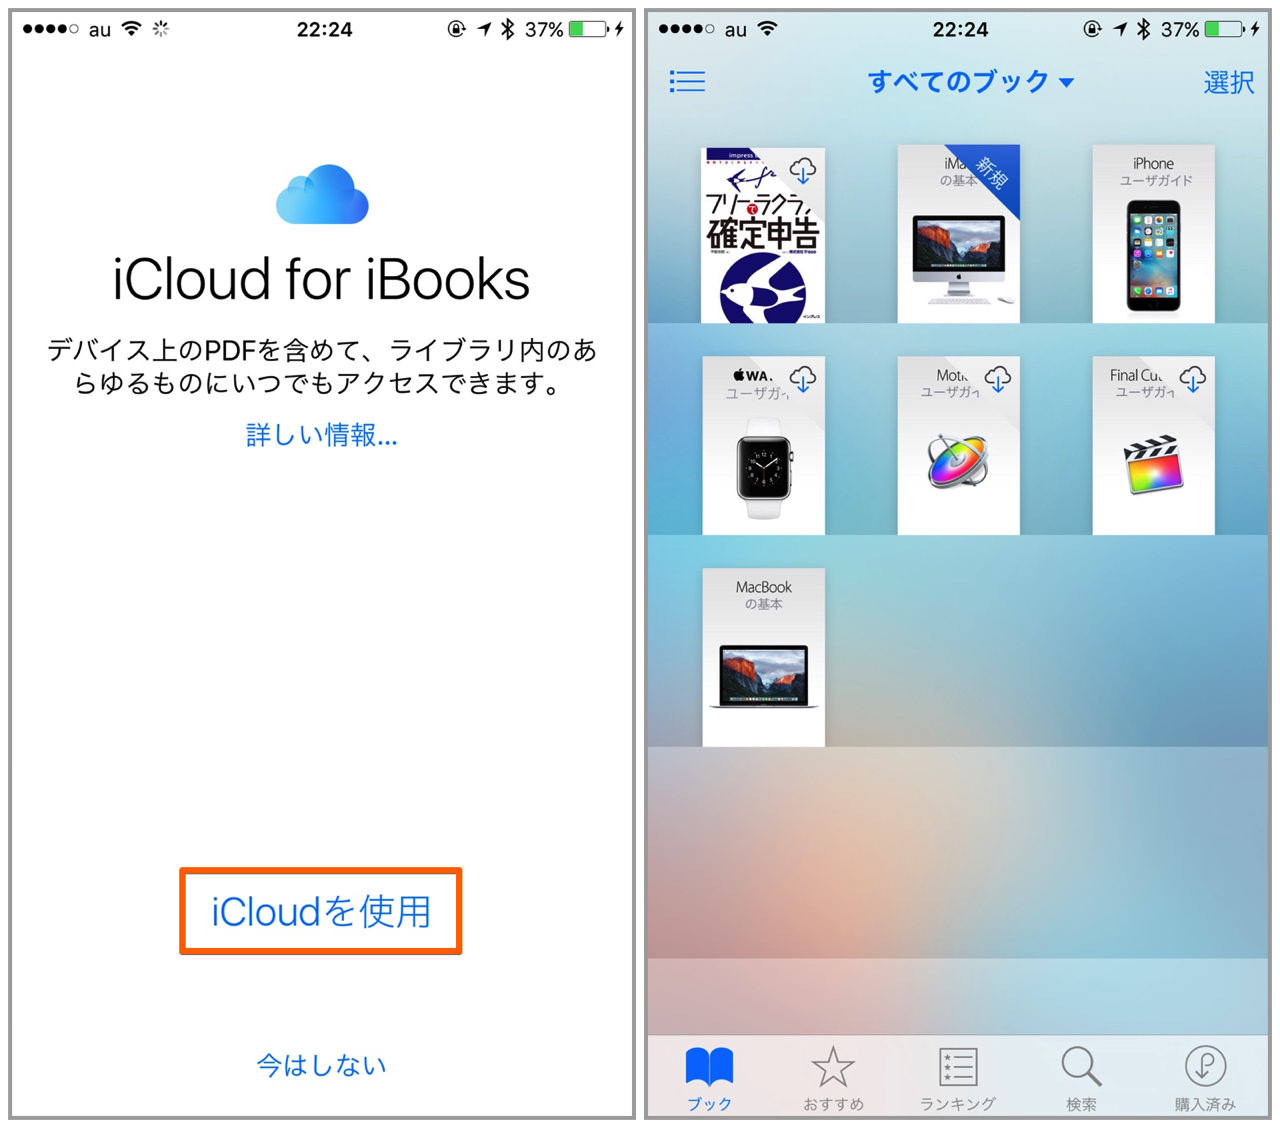 Synchronize mac and ios pdf icloud saved in ibooks1